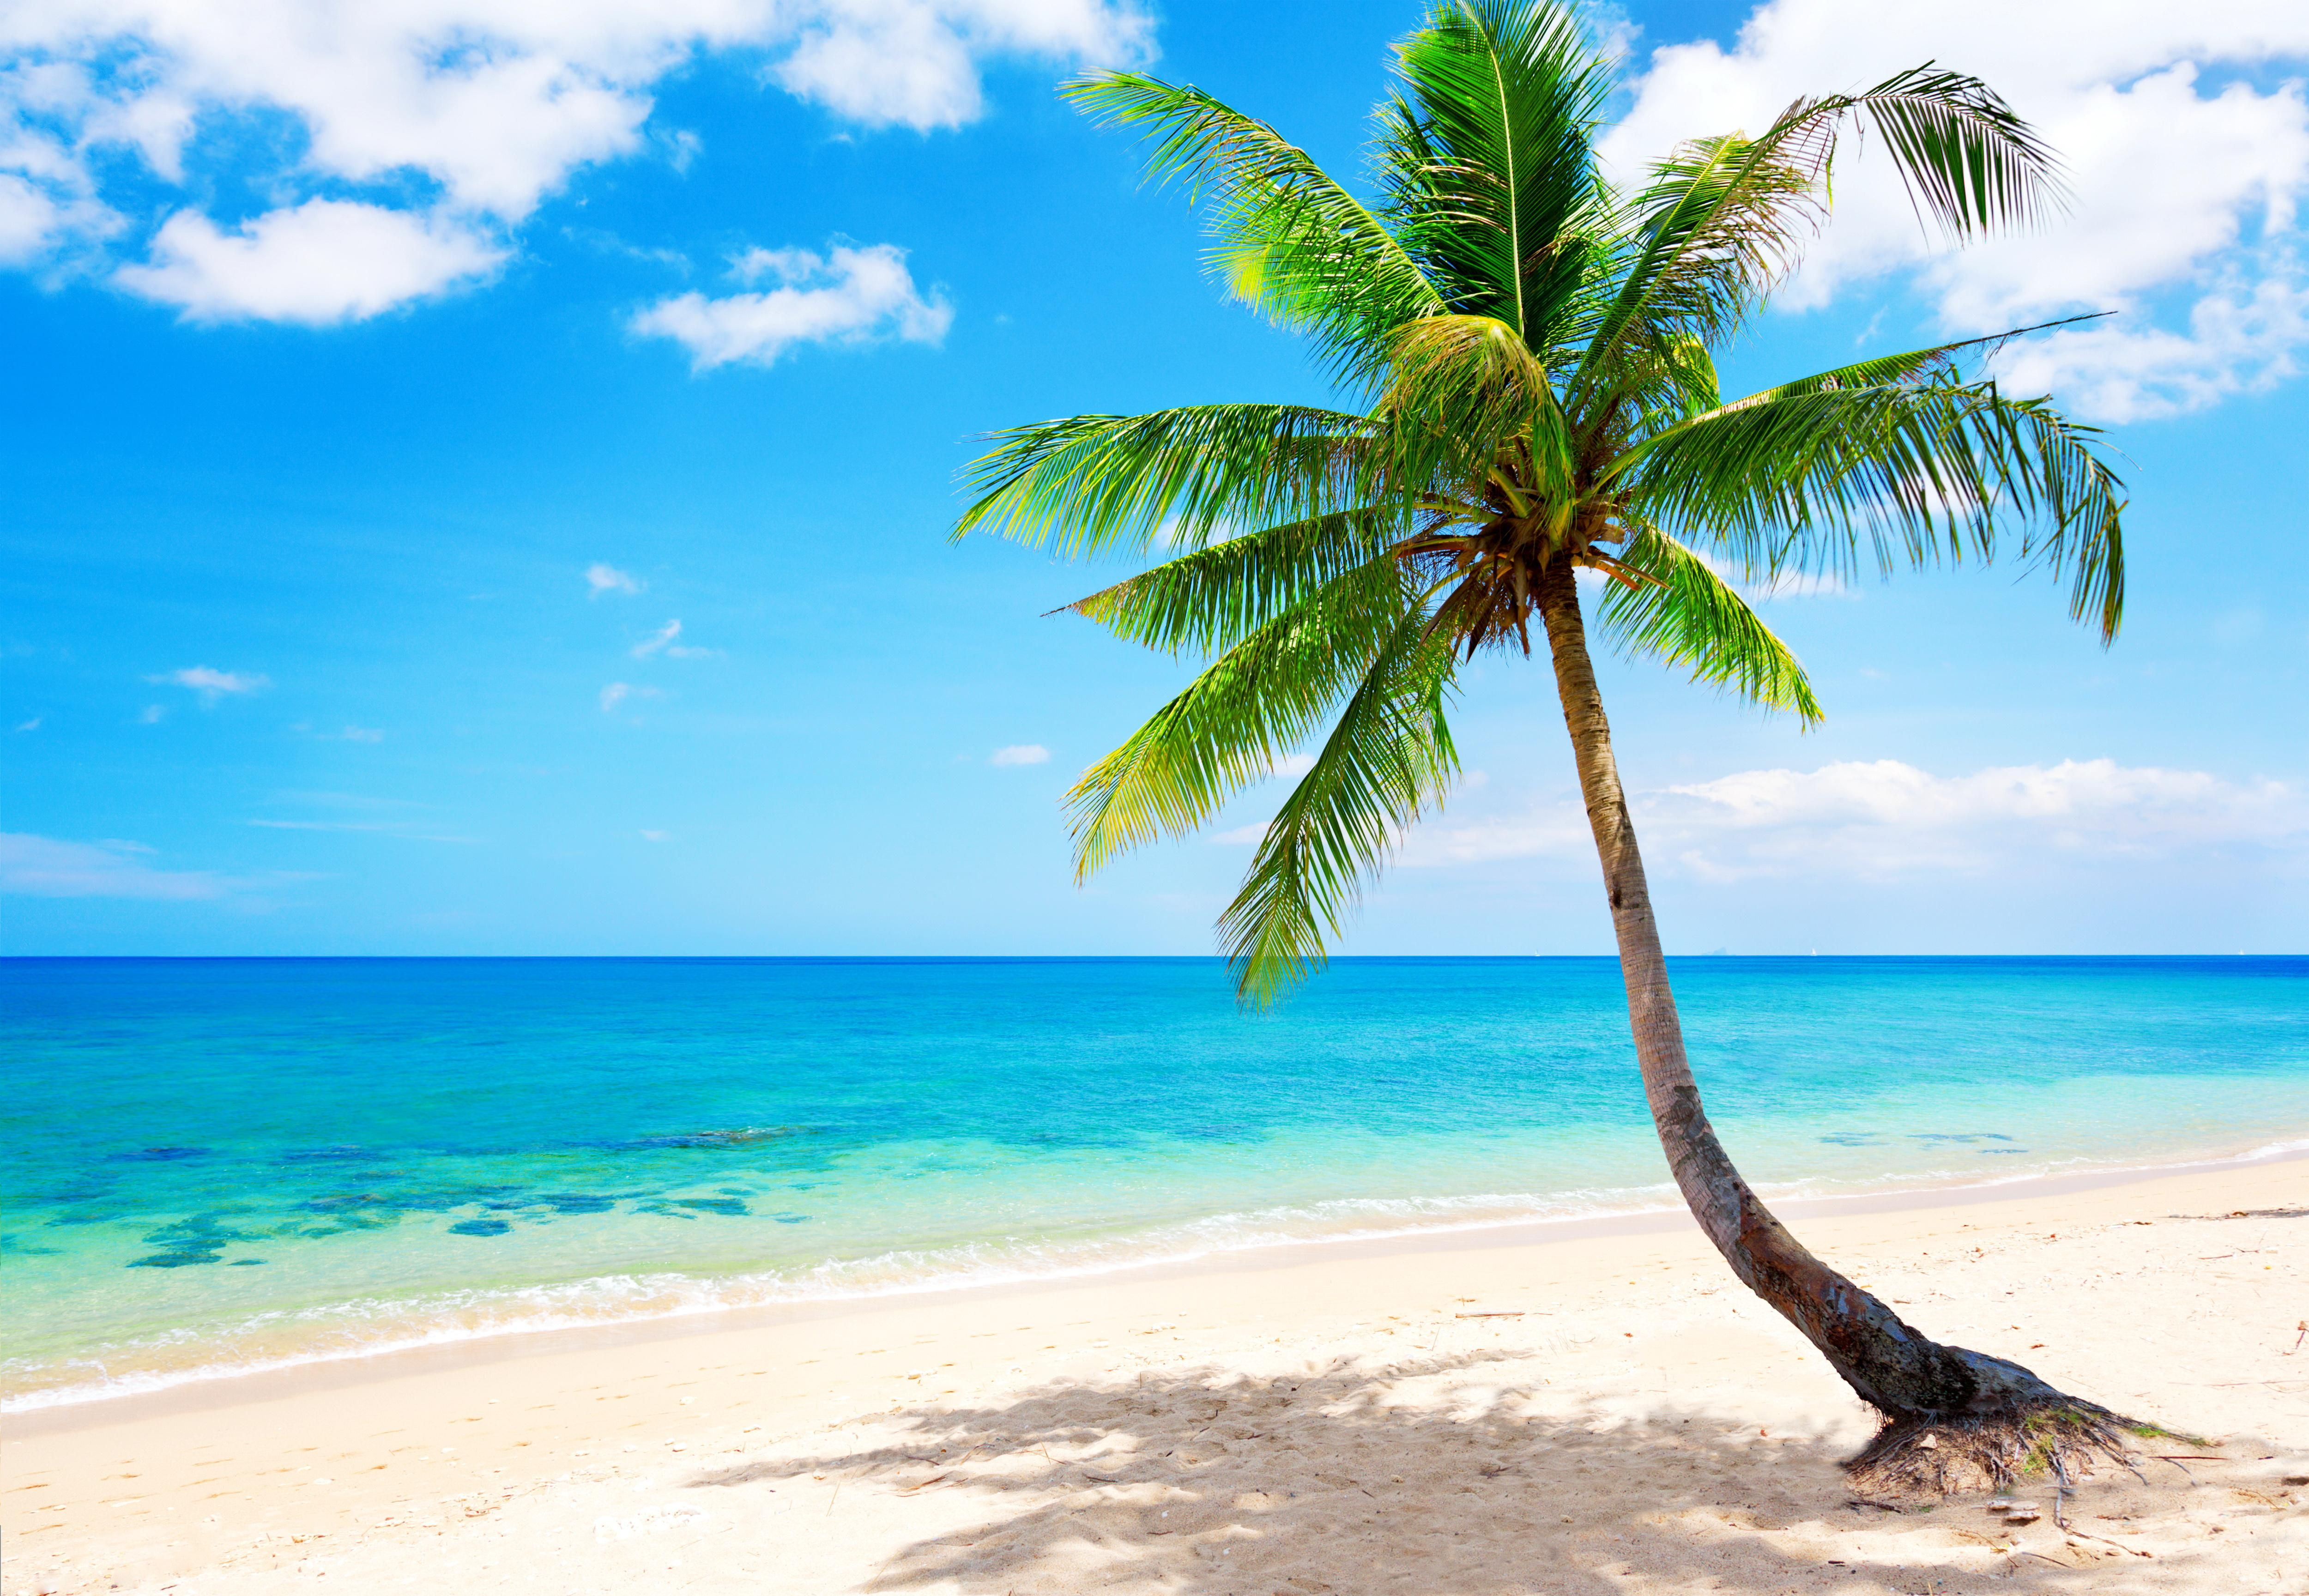 Tropical Beach Wallpapers | Tropical | Beach wallpaper ... image black and white library